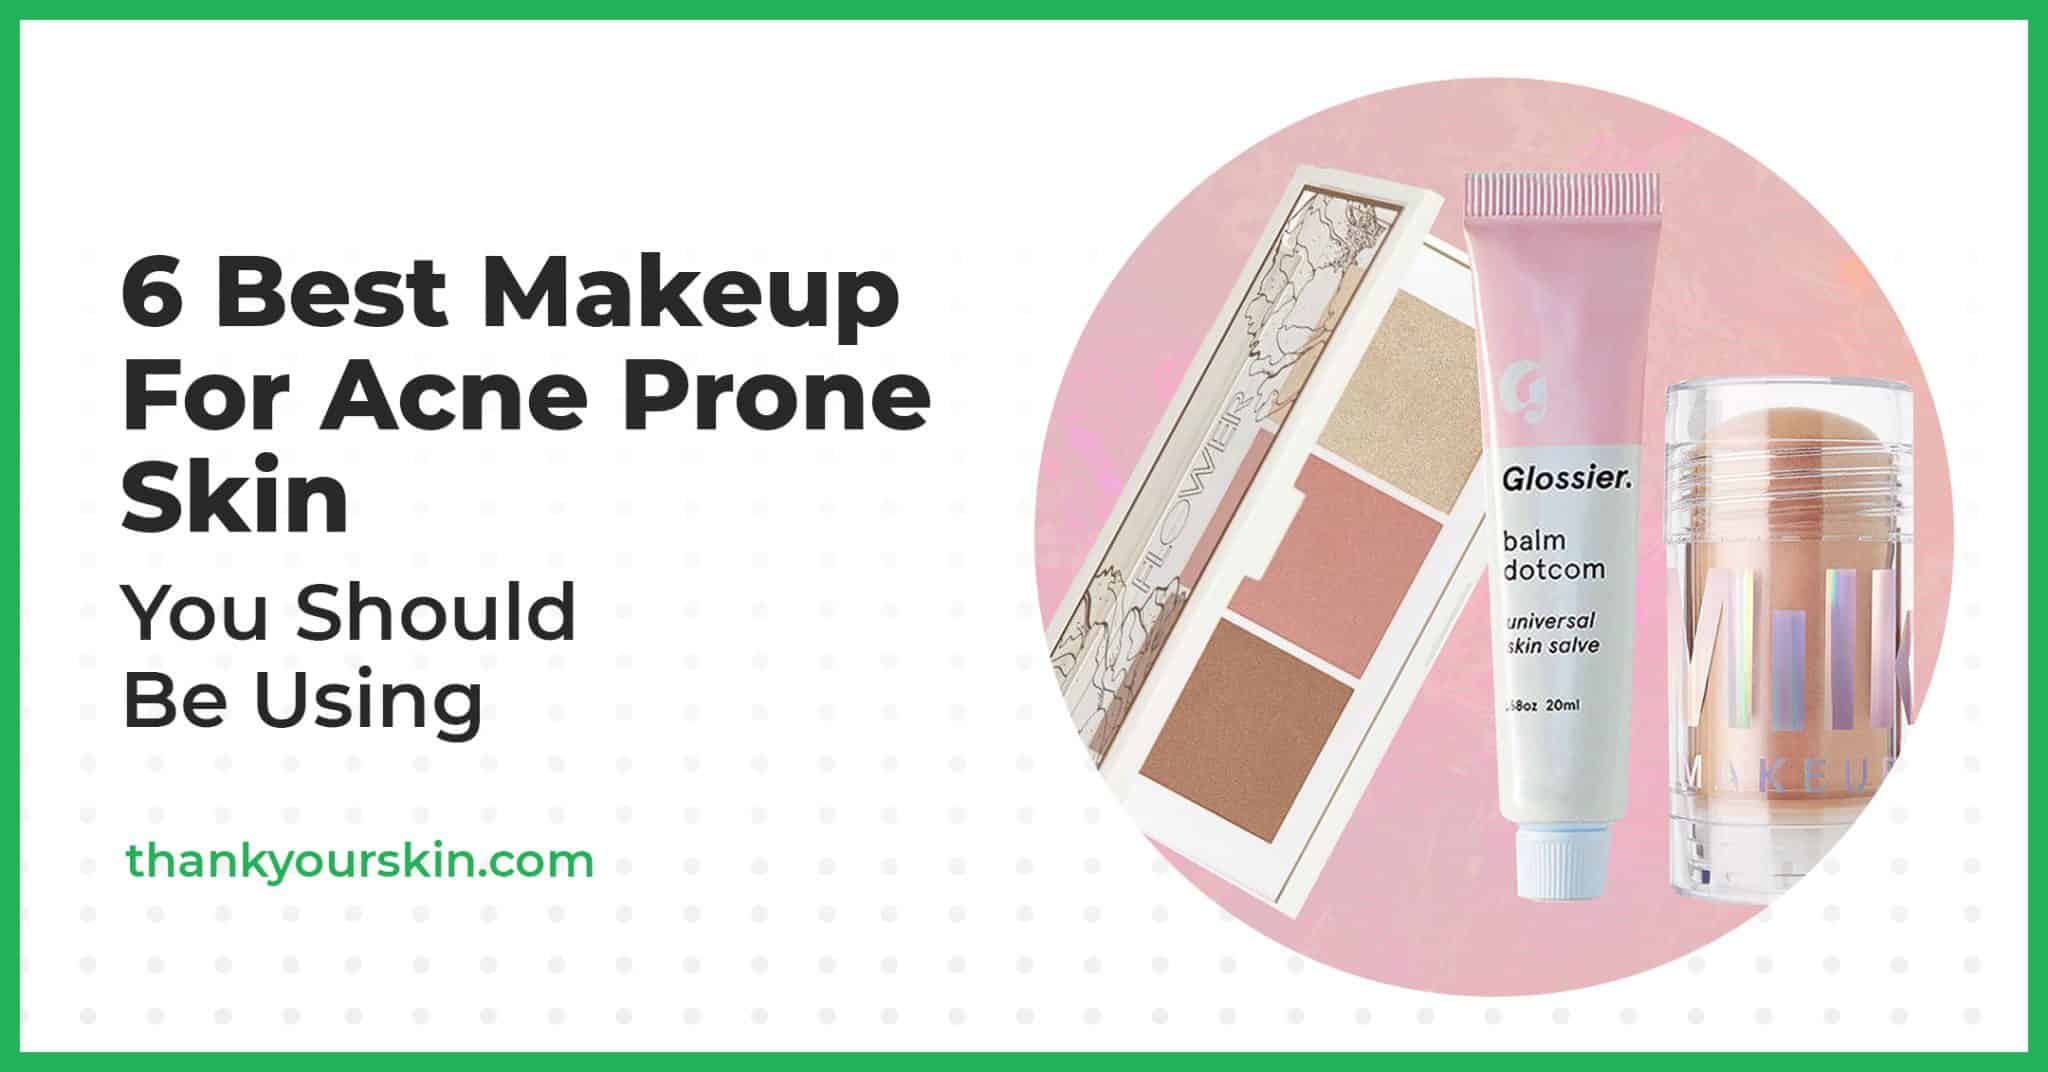 6 Best Makeup For Acne Prone Skin You Should Be Using